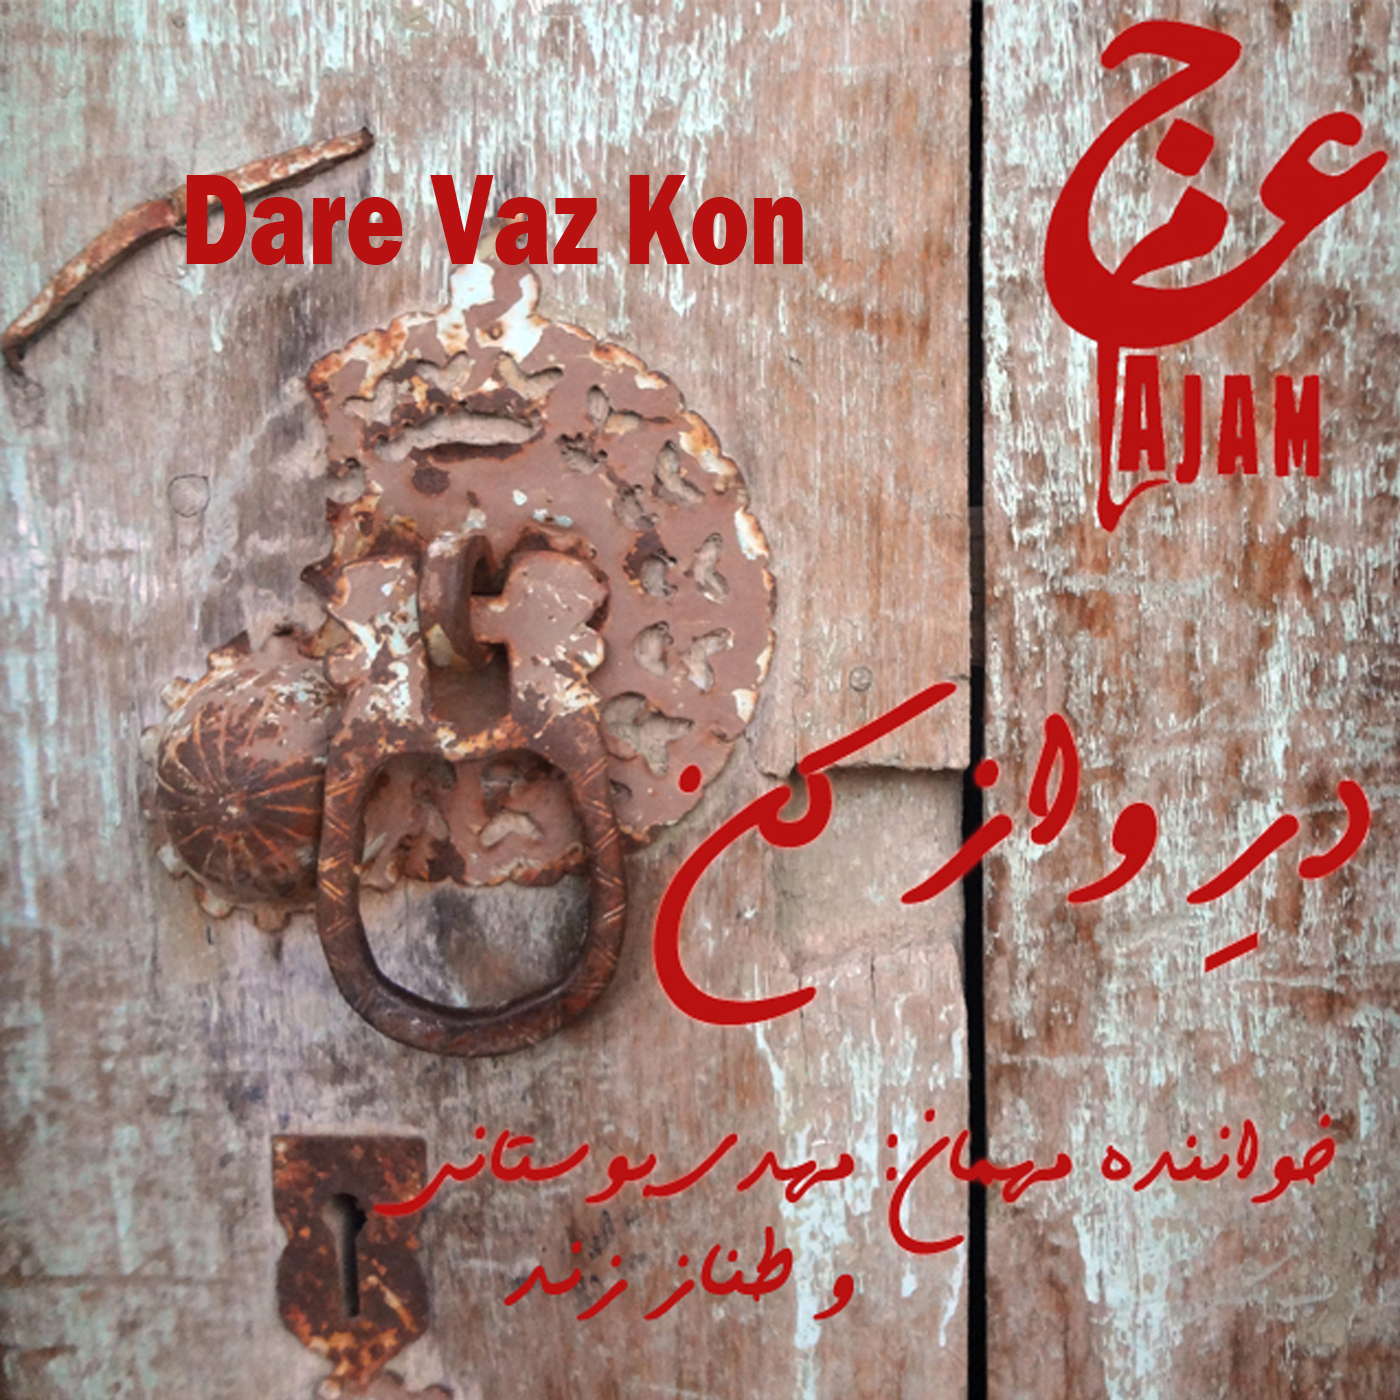 dare-vaz-kon-1400-x-1400-with-english